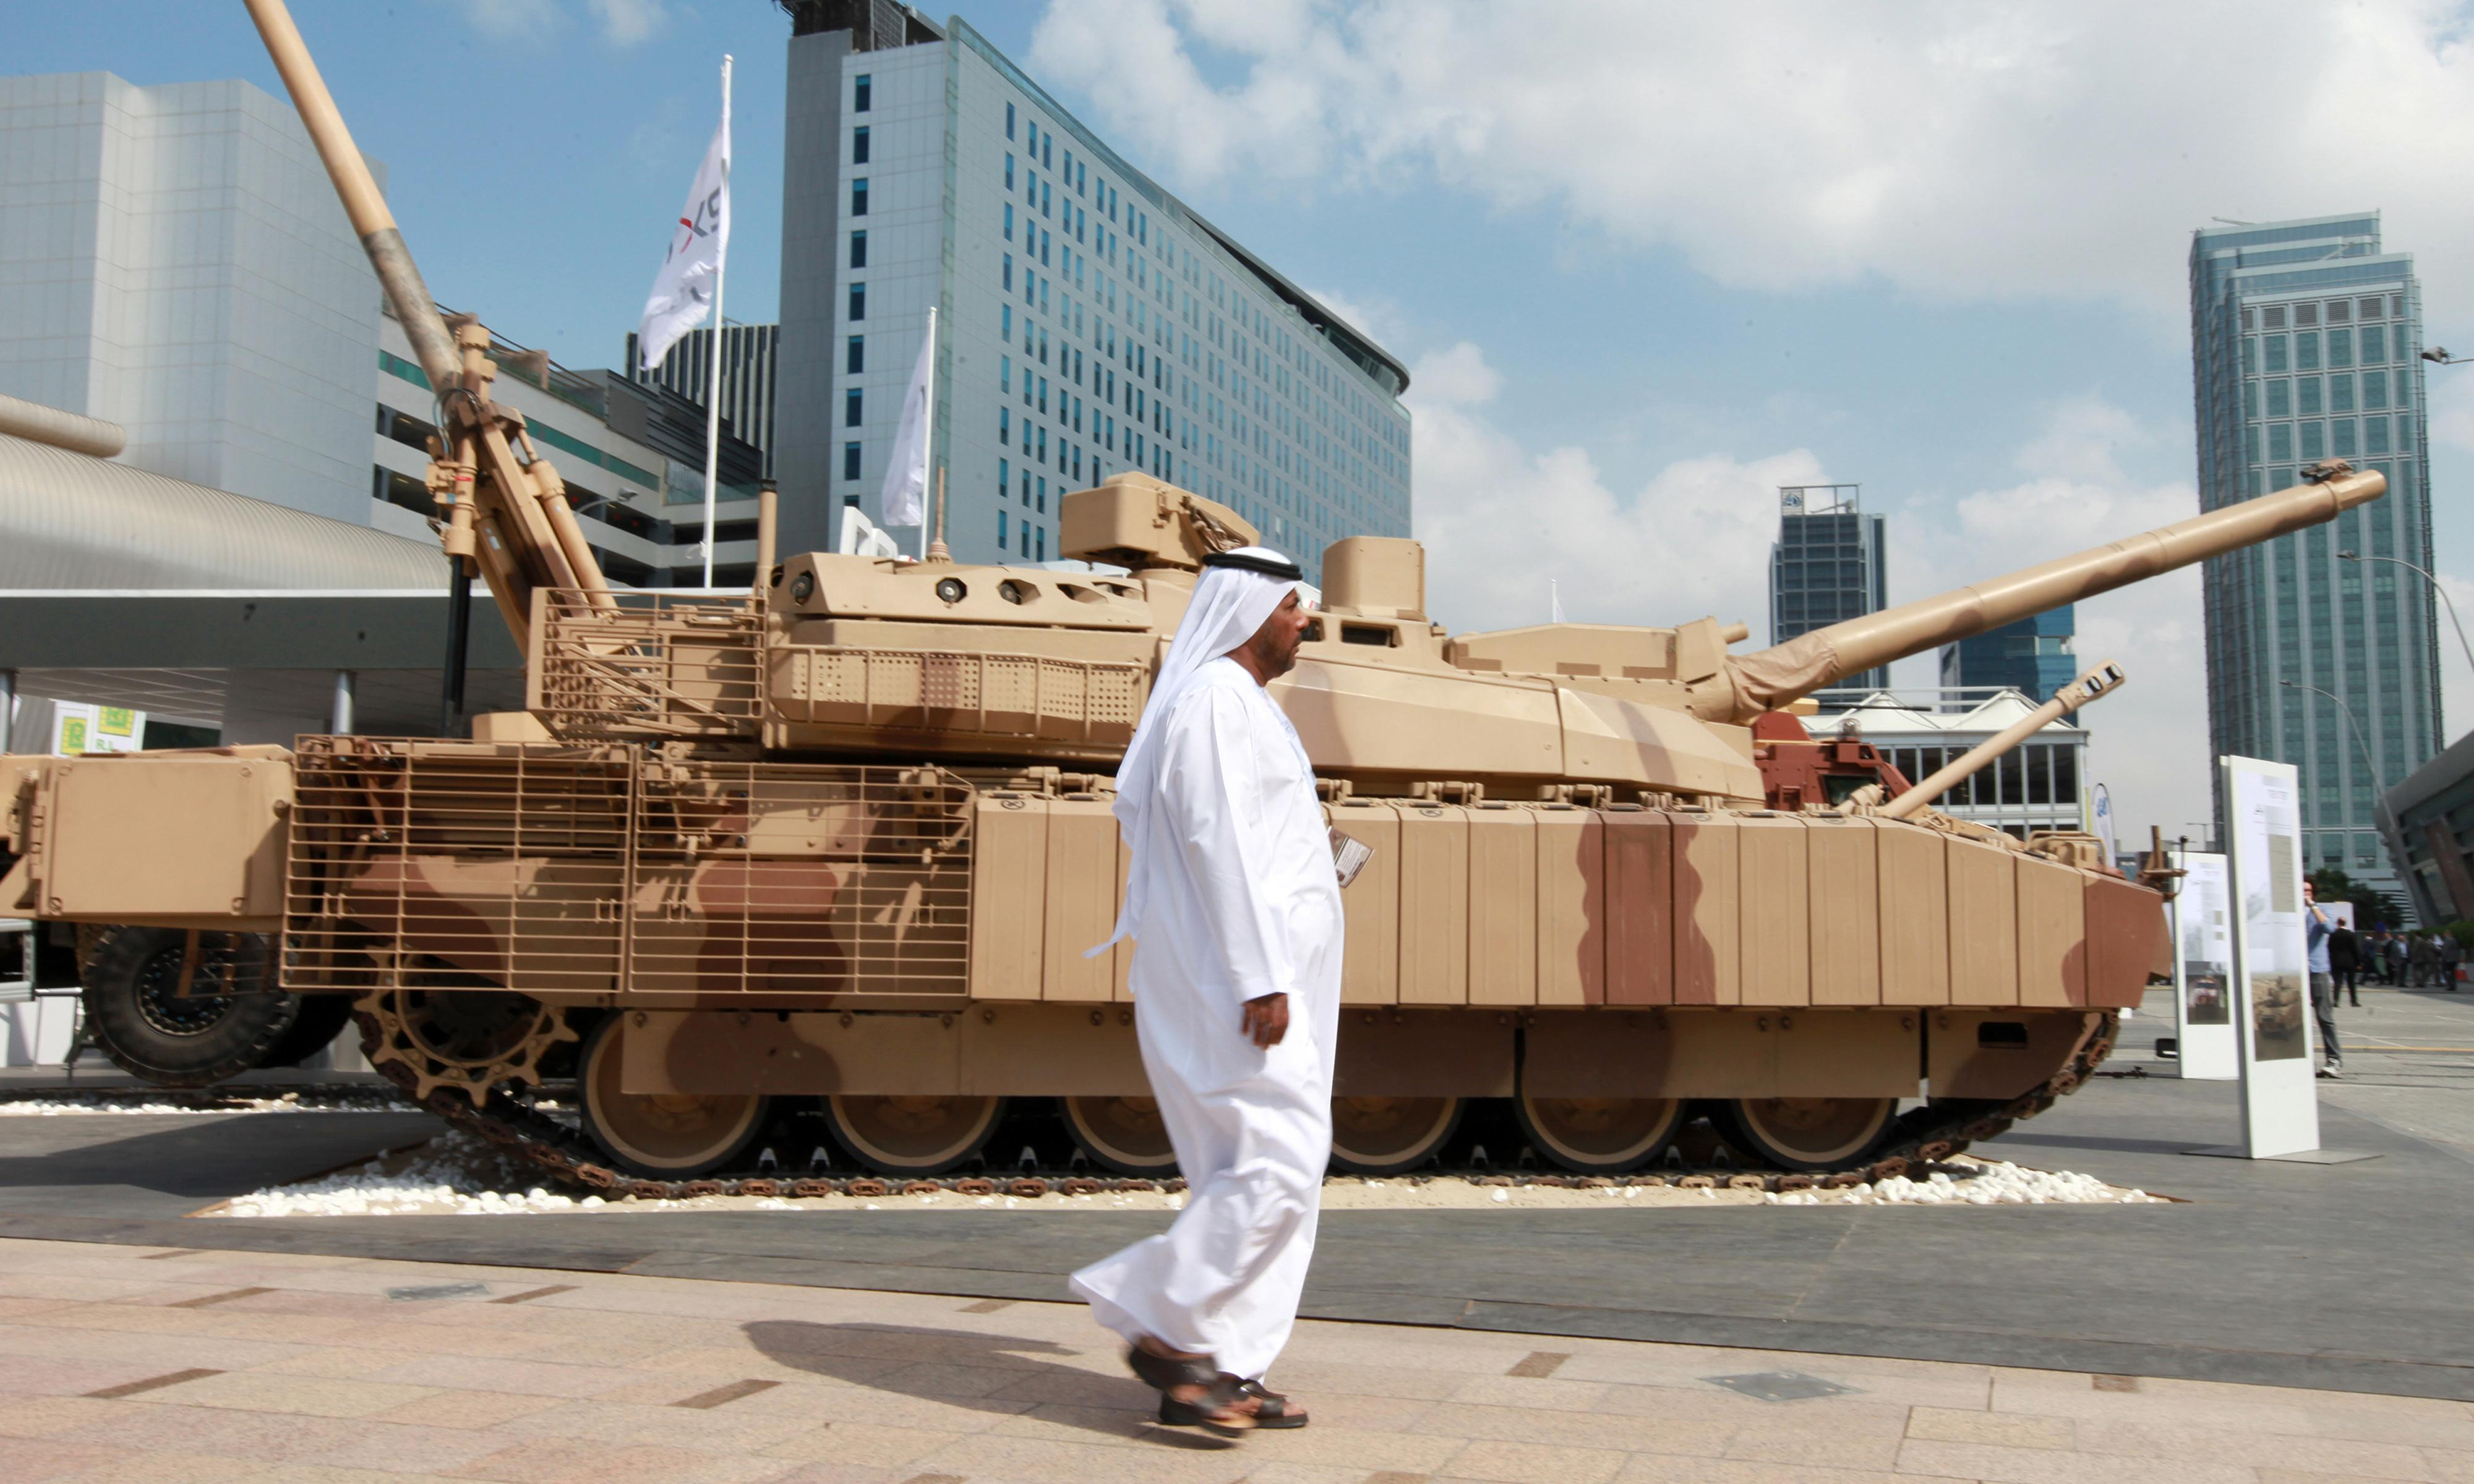 Global arms trade reaches highest point since cold war era